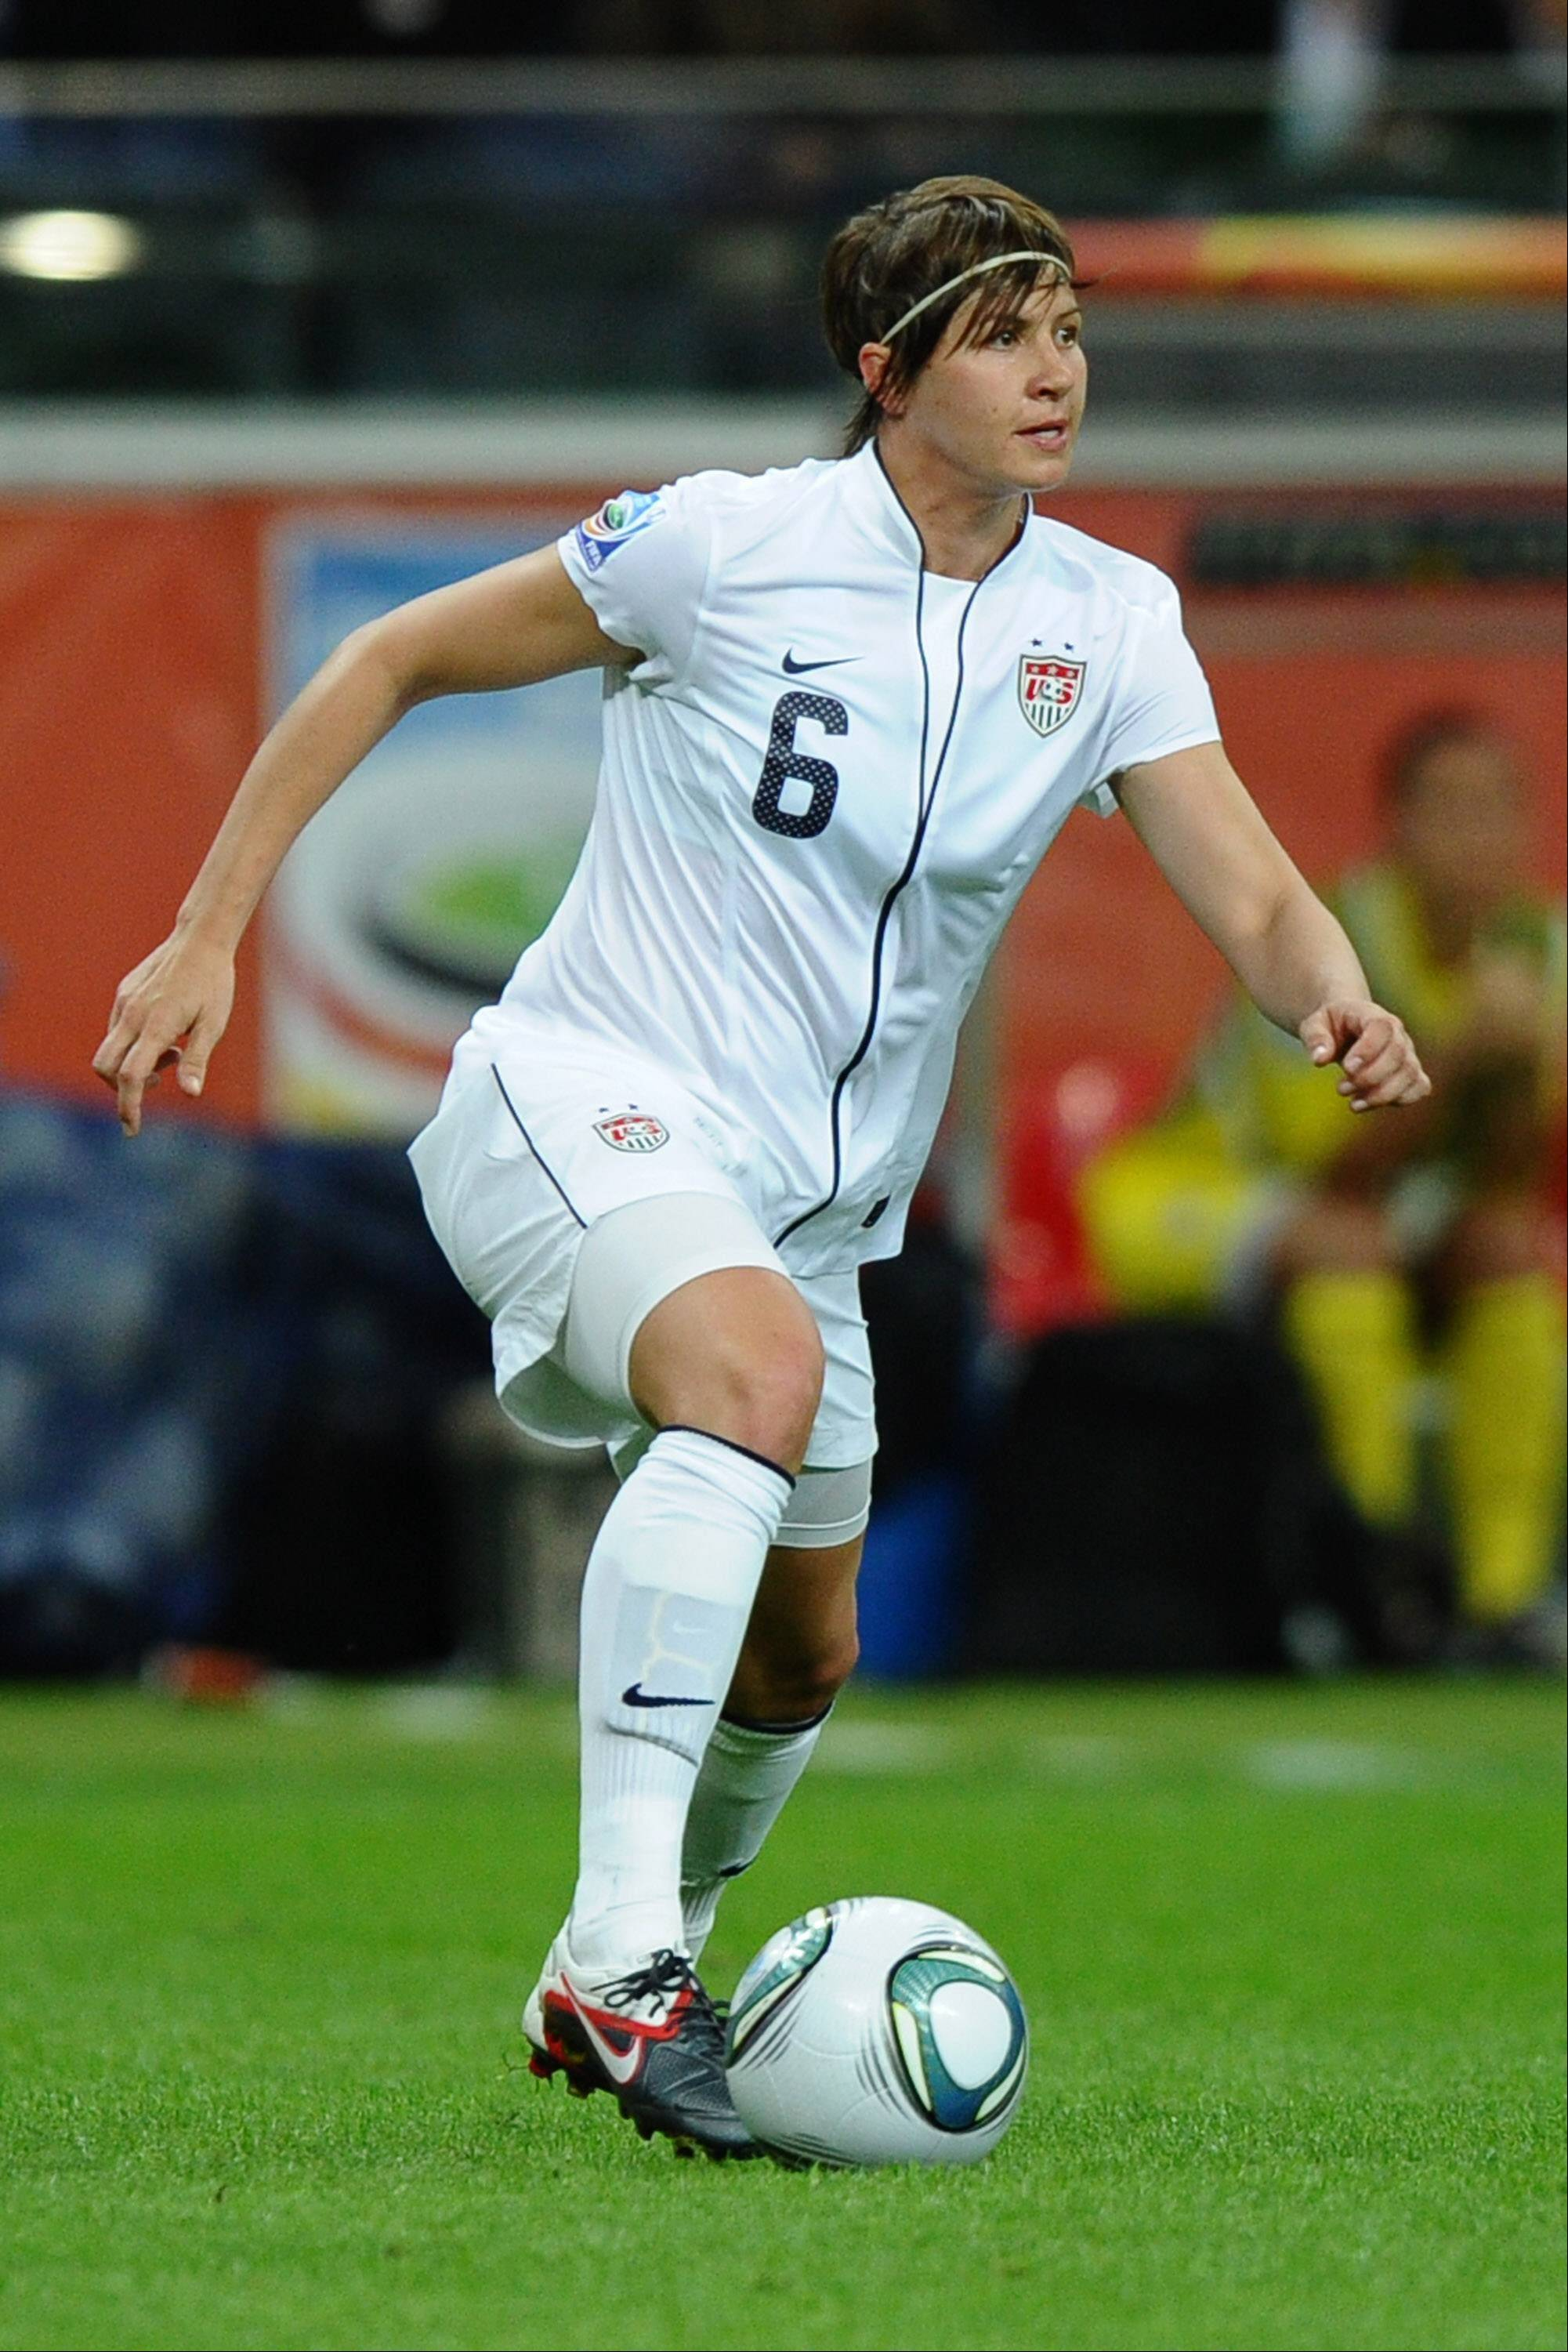 Former Crystal Lake soccer standout Amy LePeilbet in action against Japan in the FIFA Women's World Cup Final on Sunday in Frankfurt, Germany.